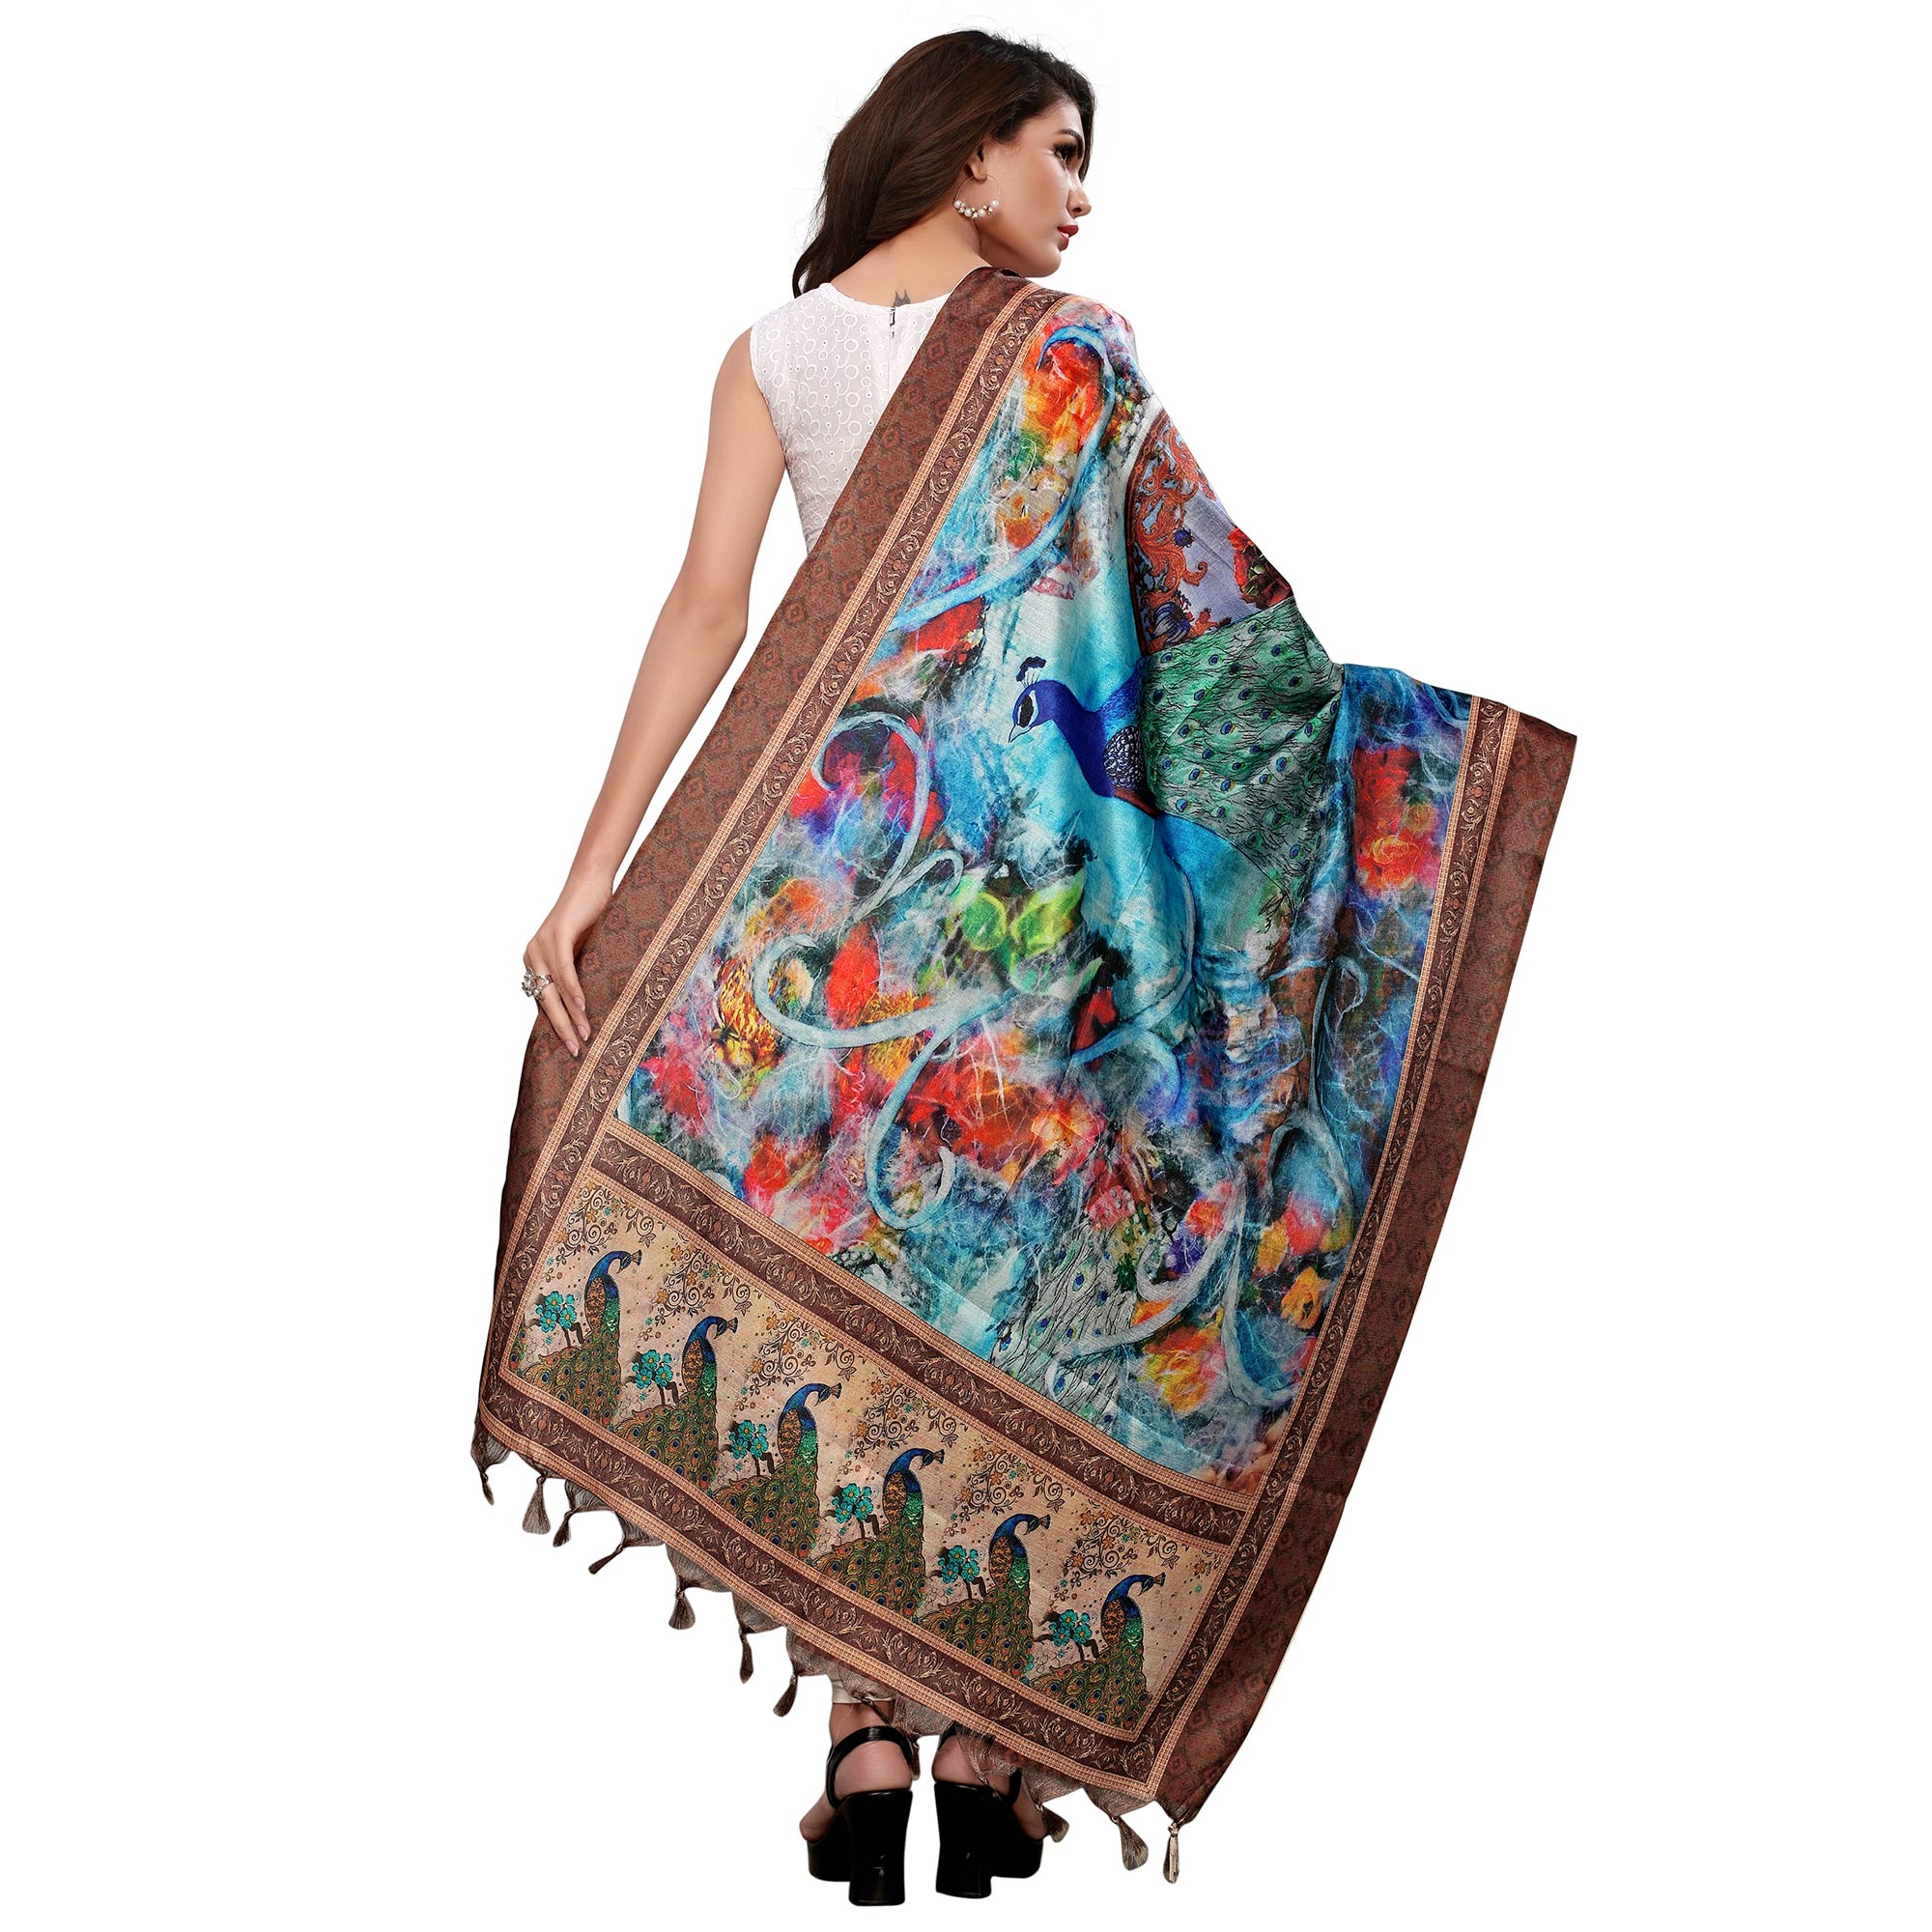 Sensational Blue-Brown Colored Casual Wear Digital Printed Khadi Silk Dupatta